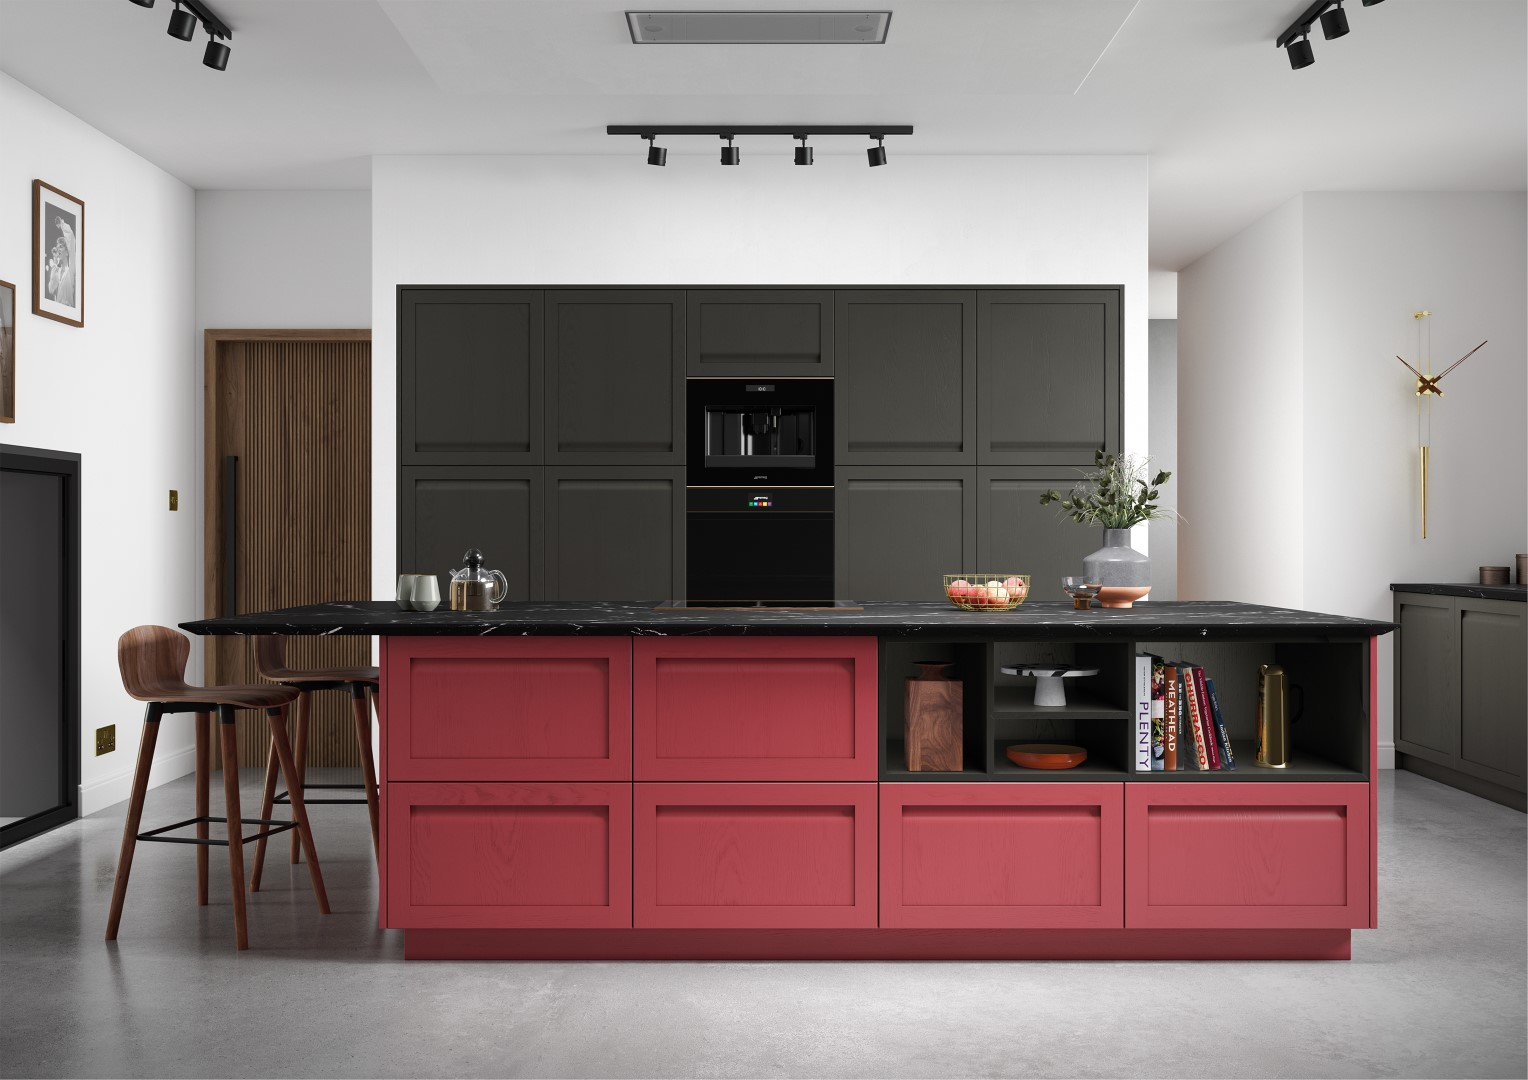 Harborne Graphite and Chicory Red - Kitchen Design - Alan Kelly Kitchens - Waterford - 5